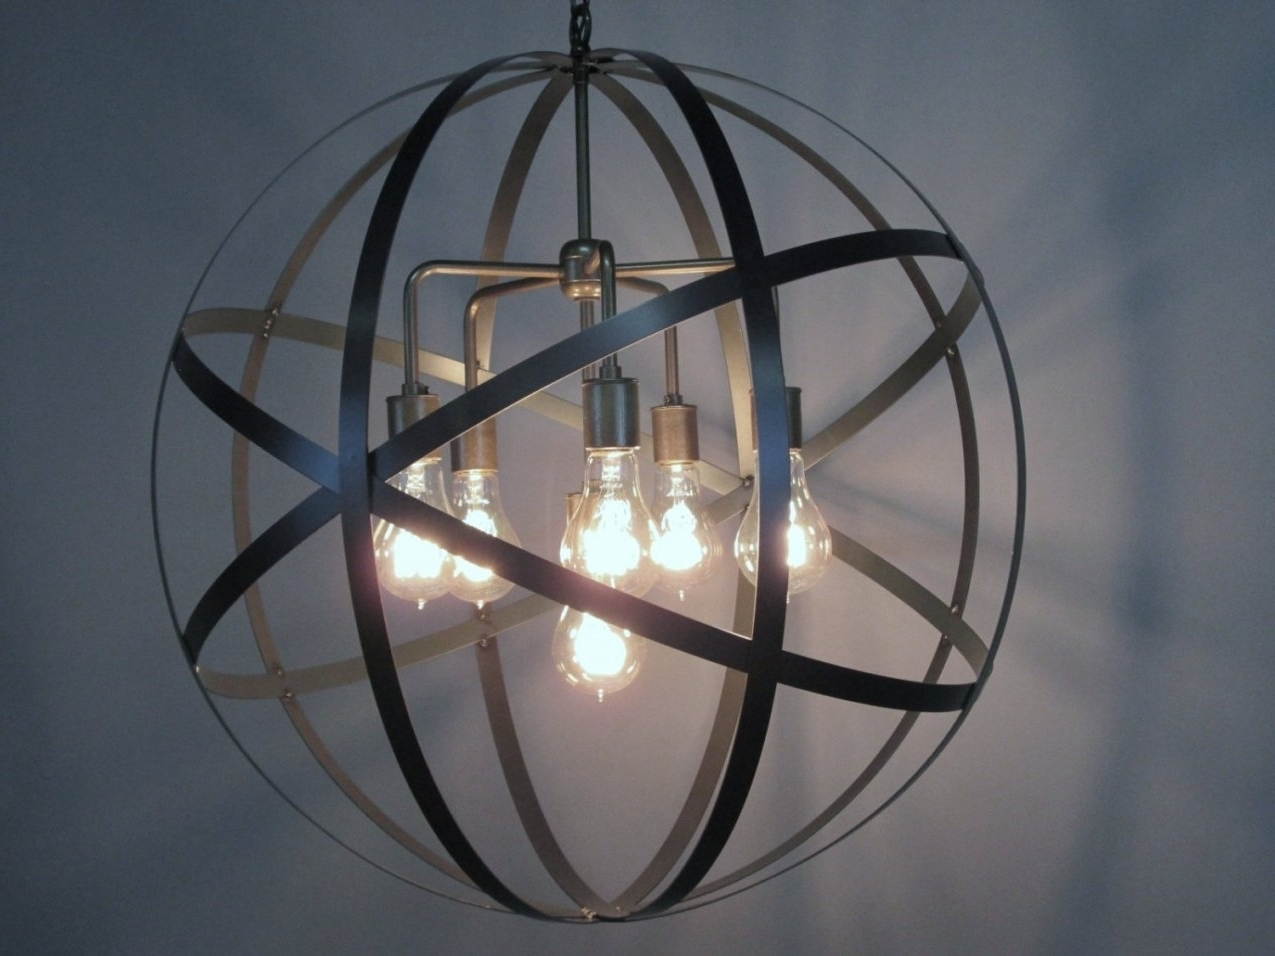 Orb Chandelier Within 2018 Accessories: Globe Metal Design Orb Chandelier With Lights Bulb (View 6 of 20)